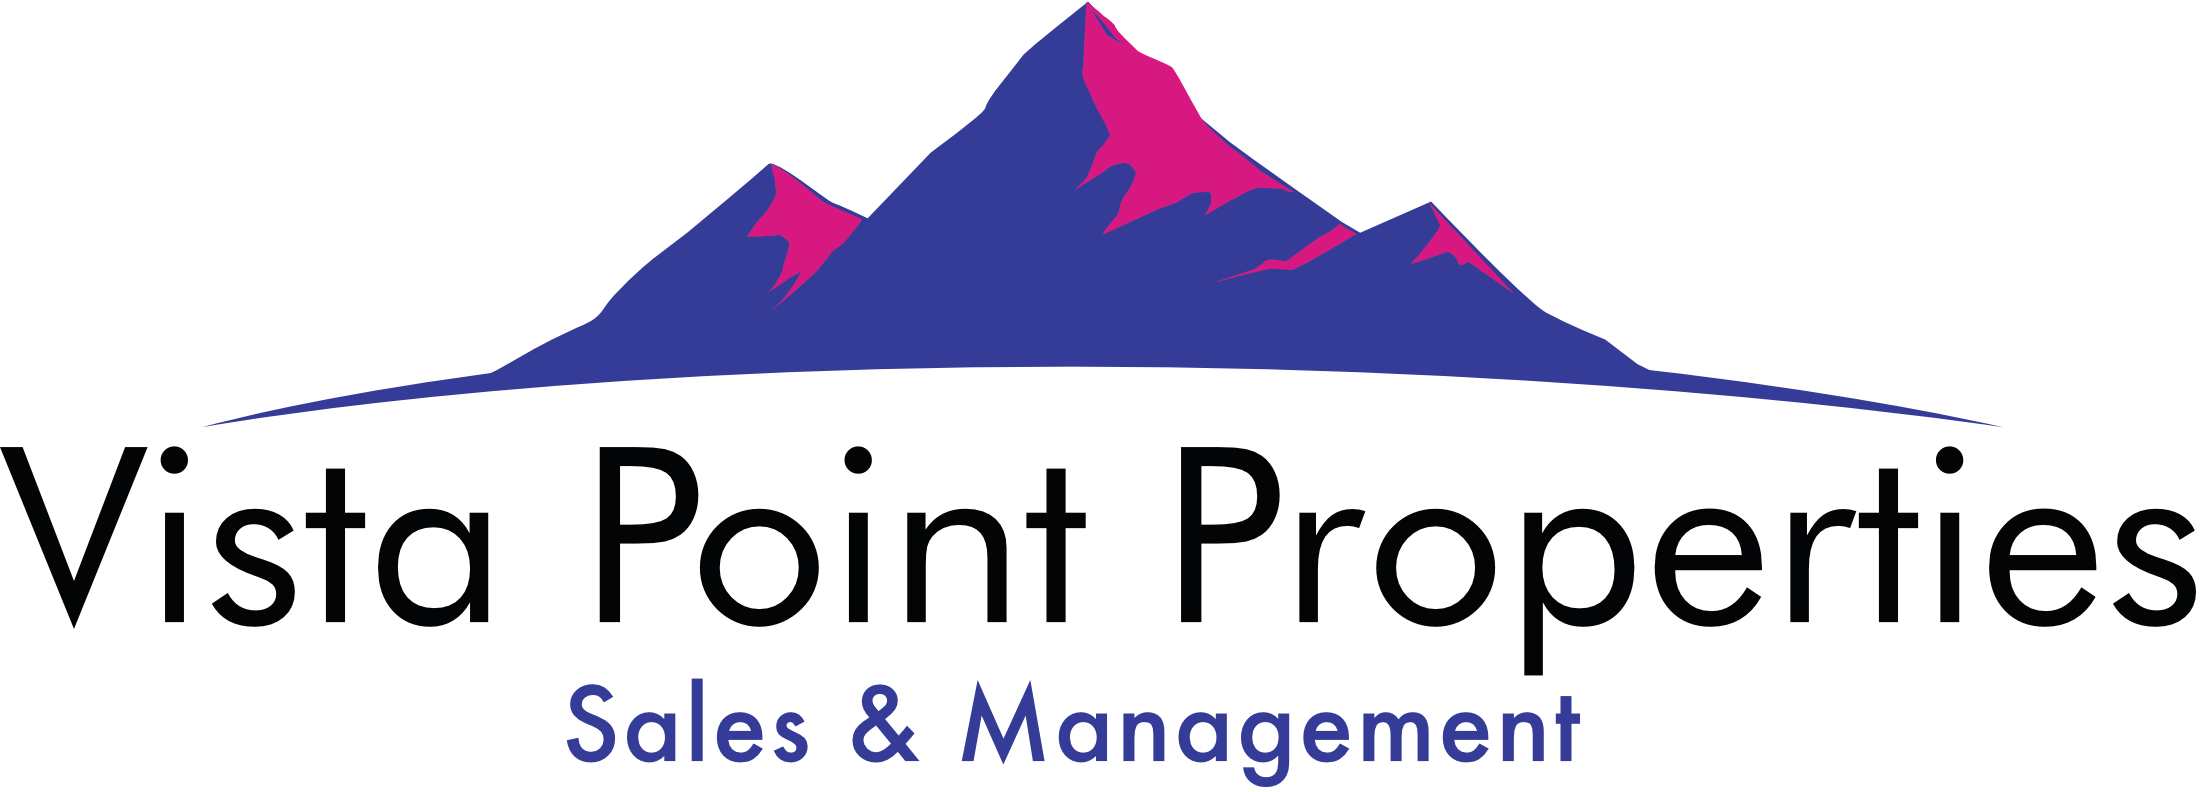 Vista Point Properties |   Tenant Resources